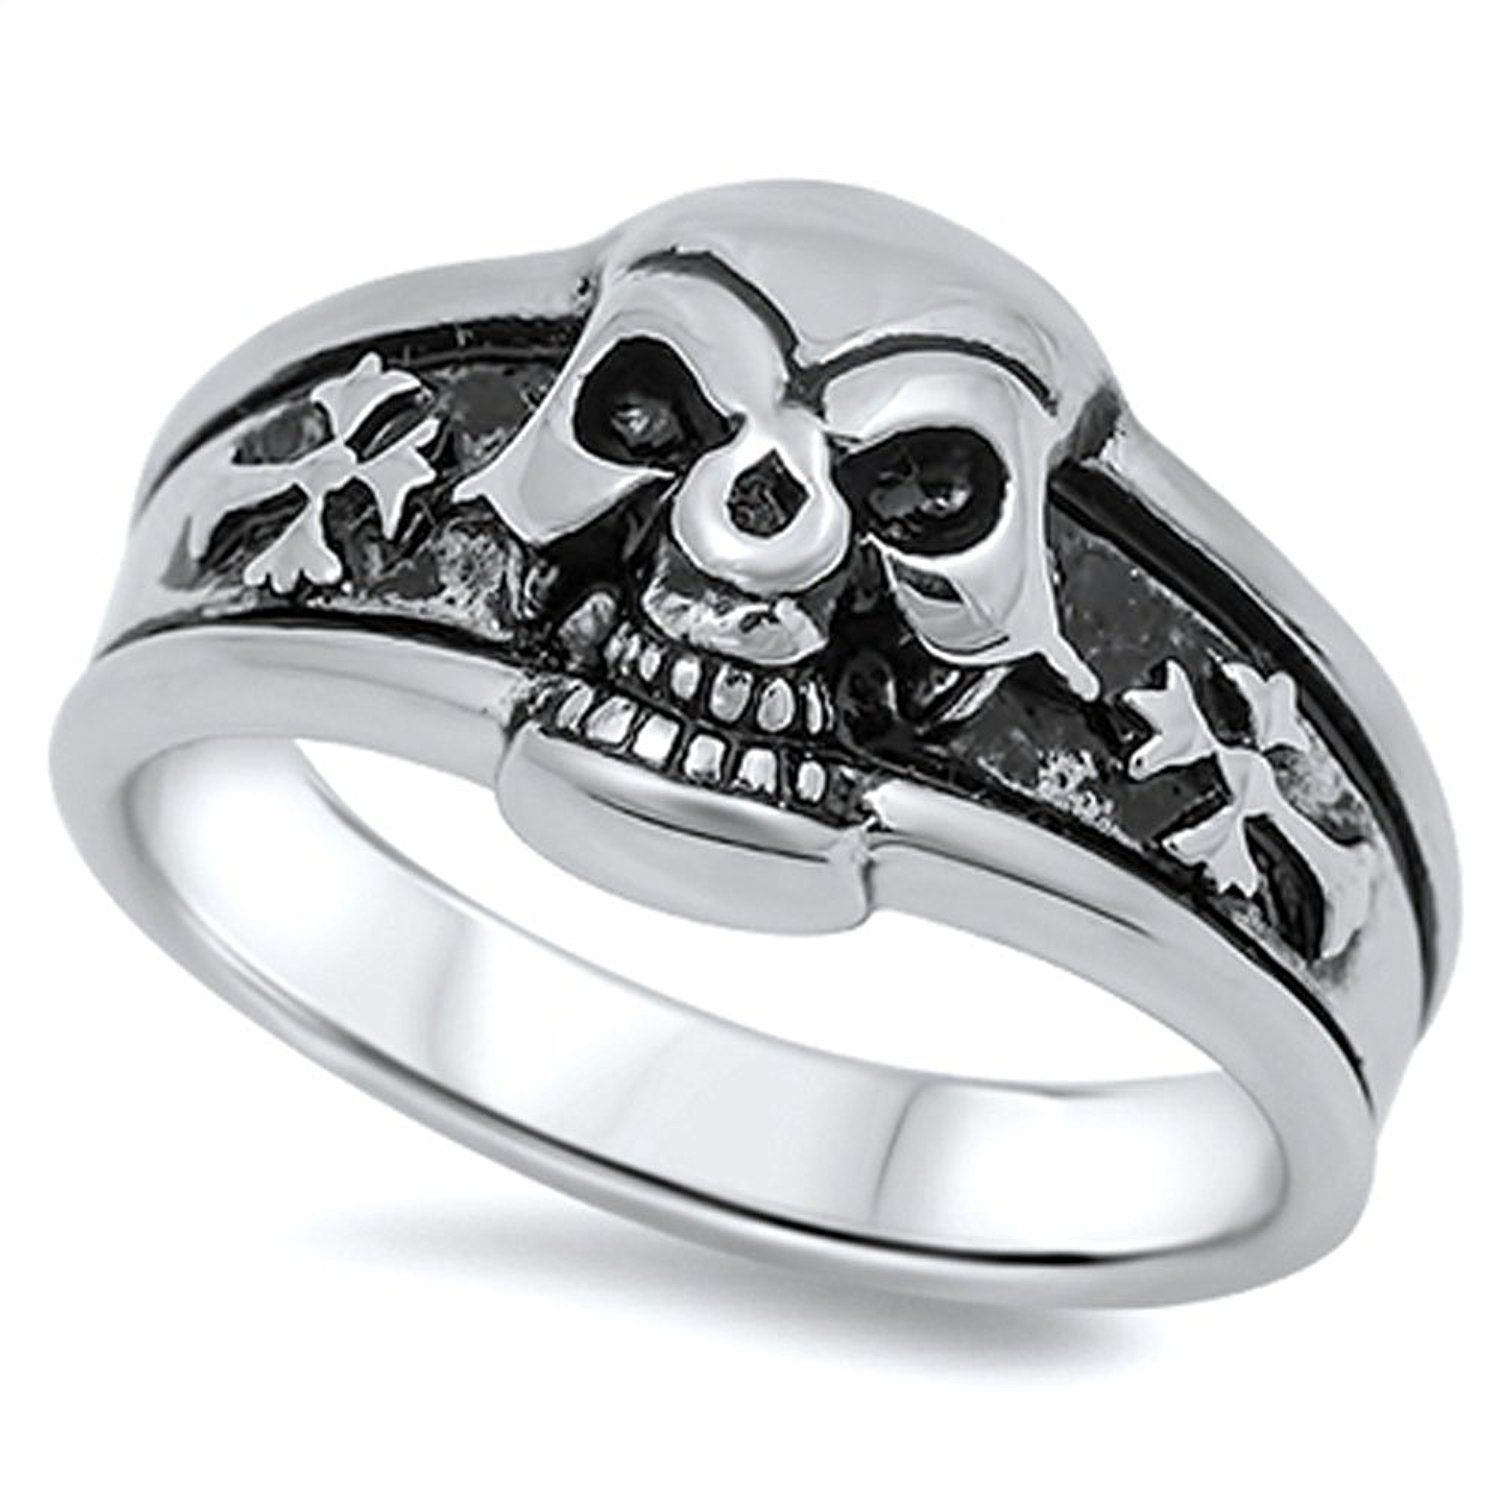 STR0348 Stainless Steel Skull Ring >>> To view further